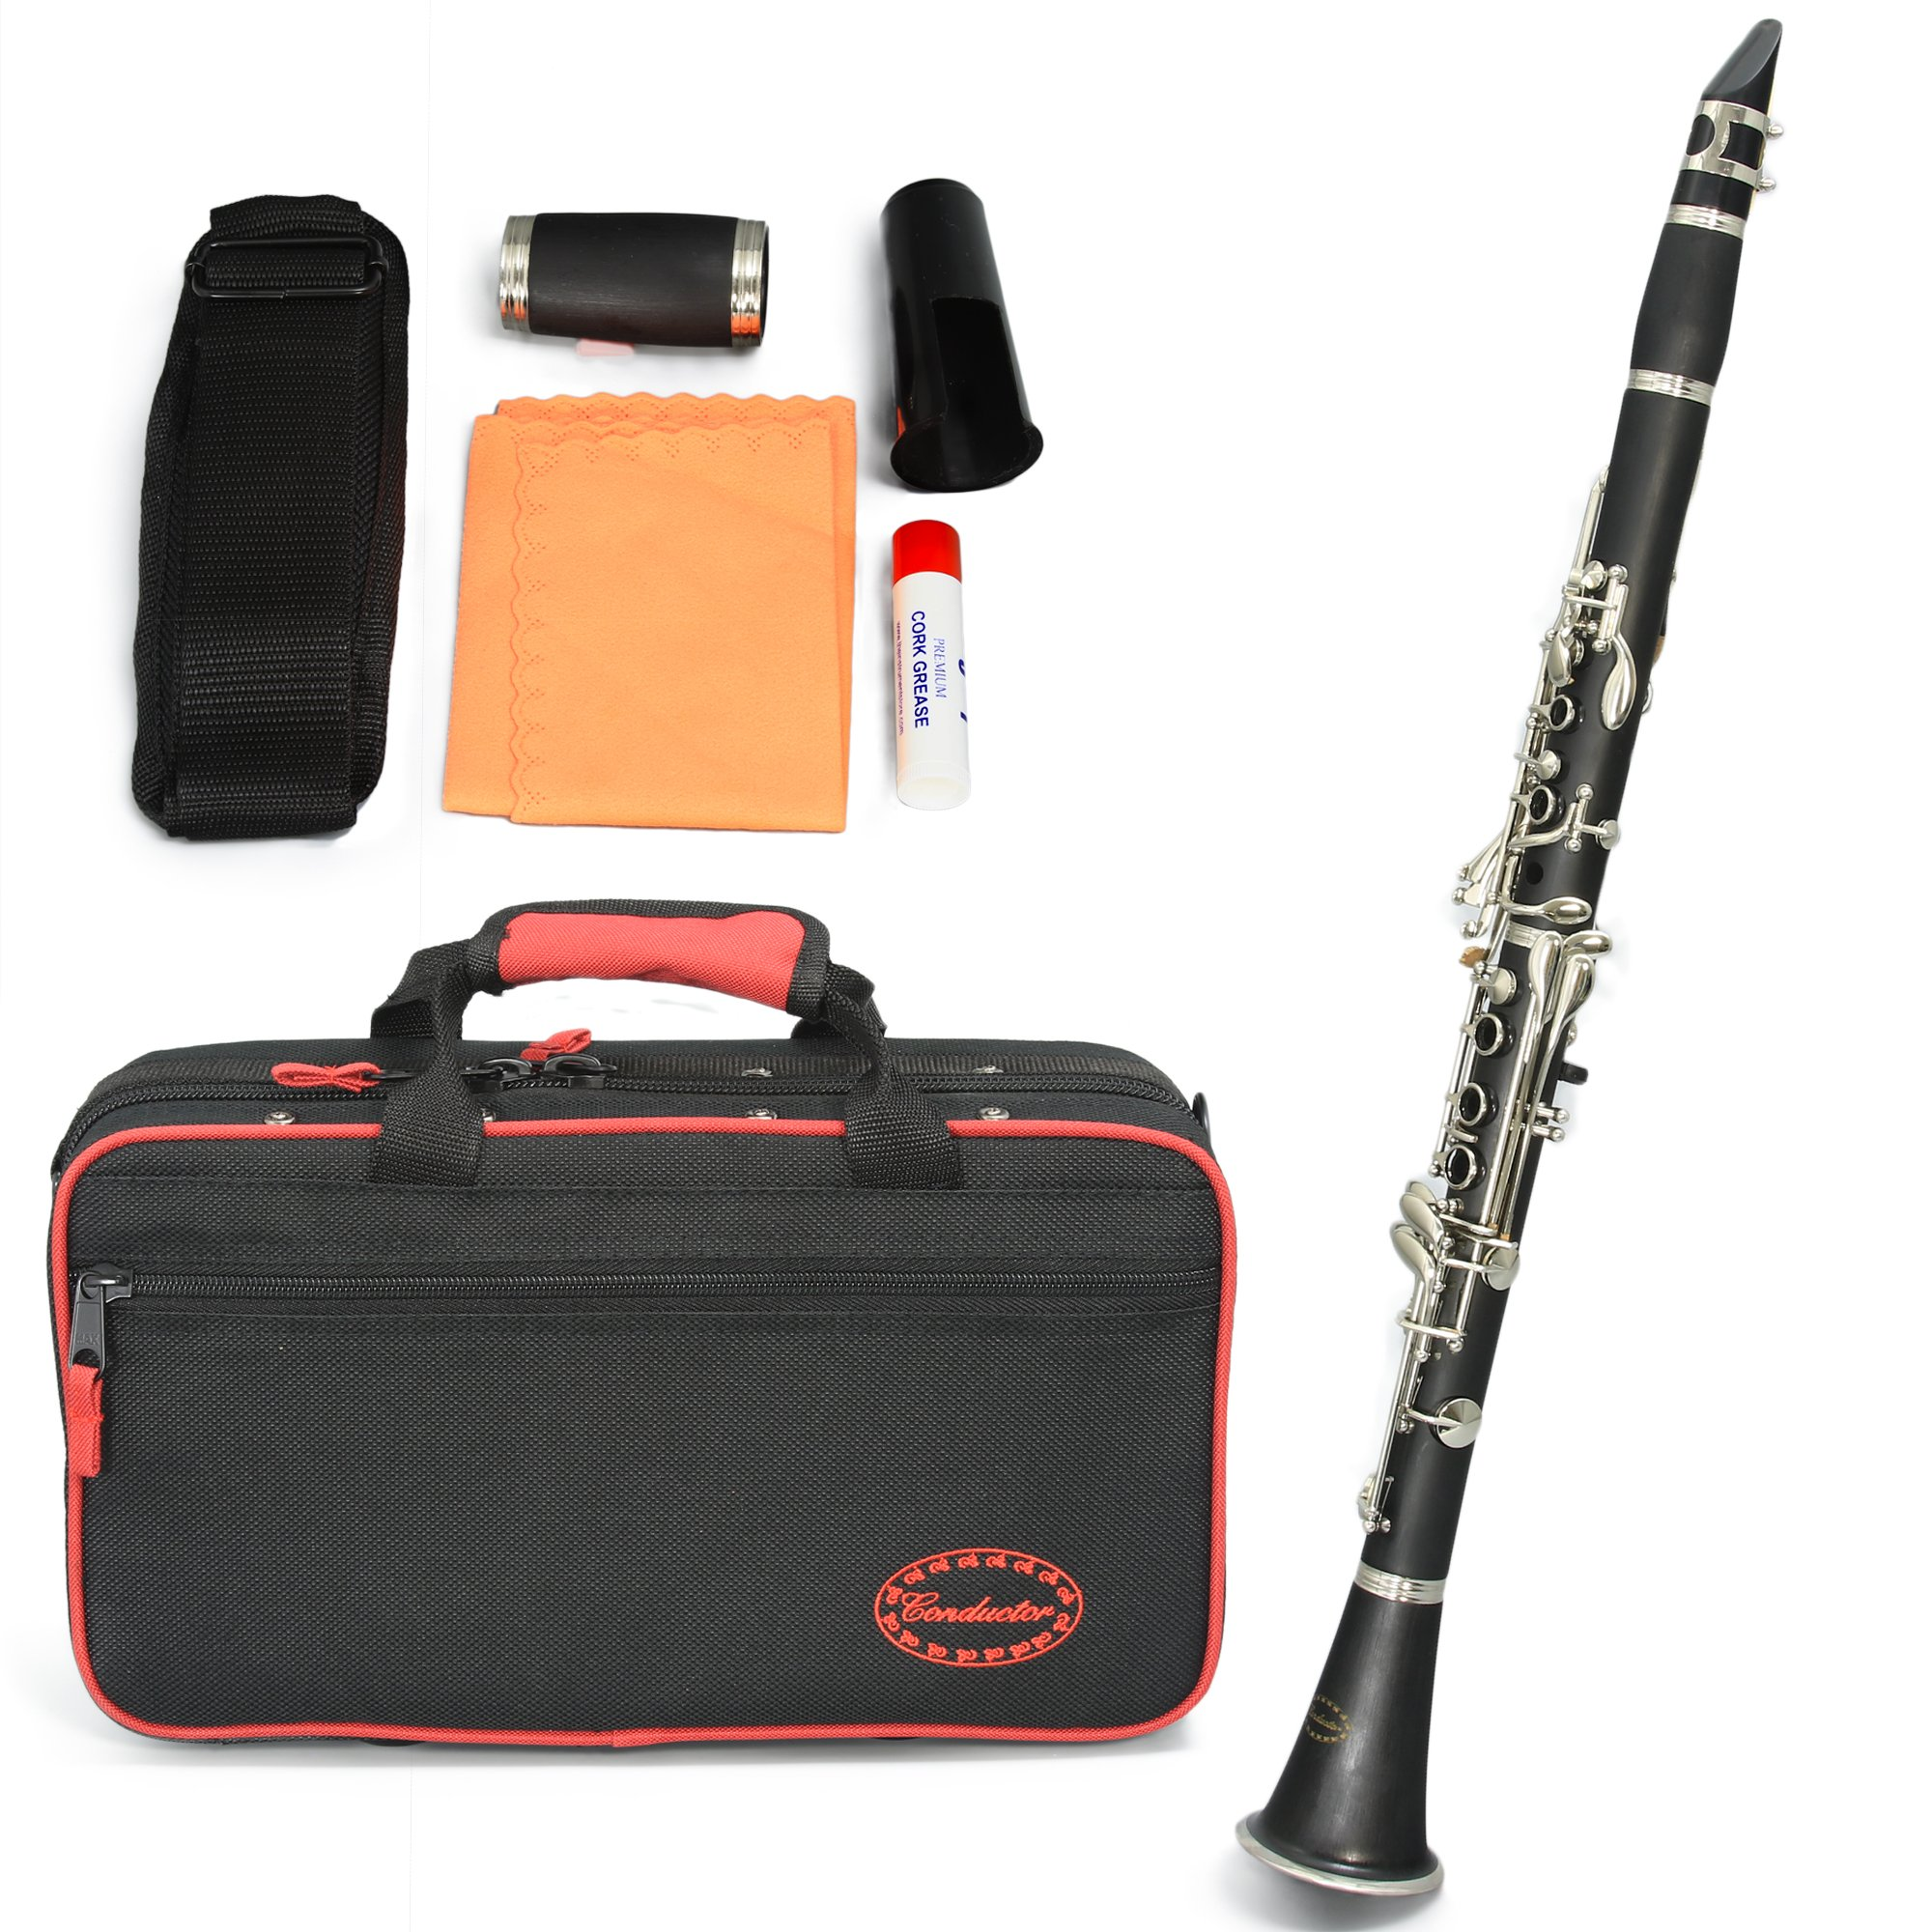 Conductor Clarinet - Series II, with Deluxe Case and Accessories